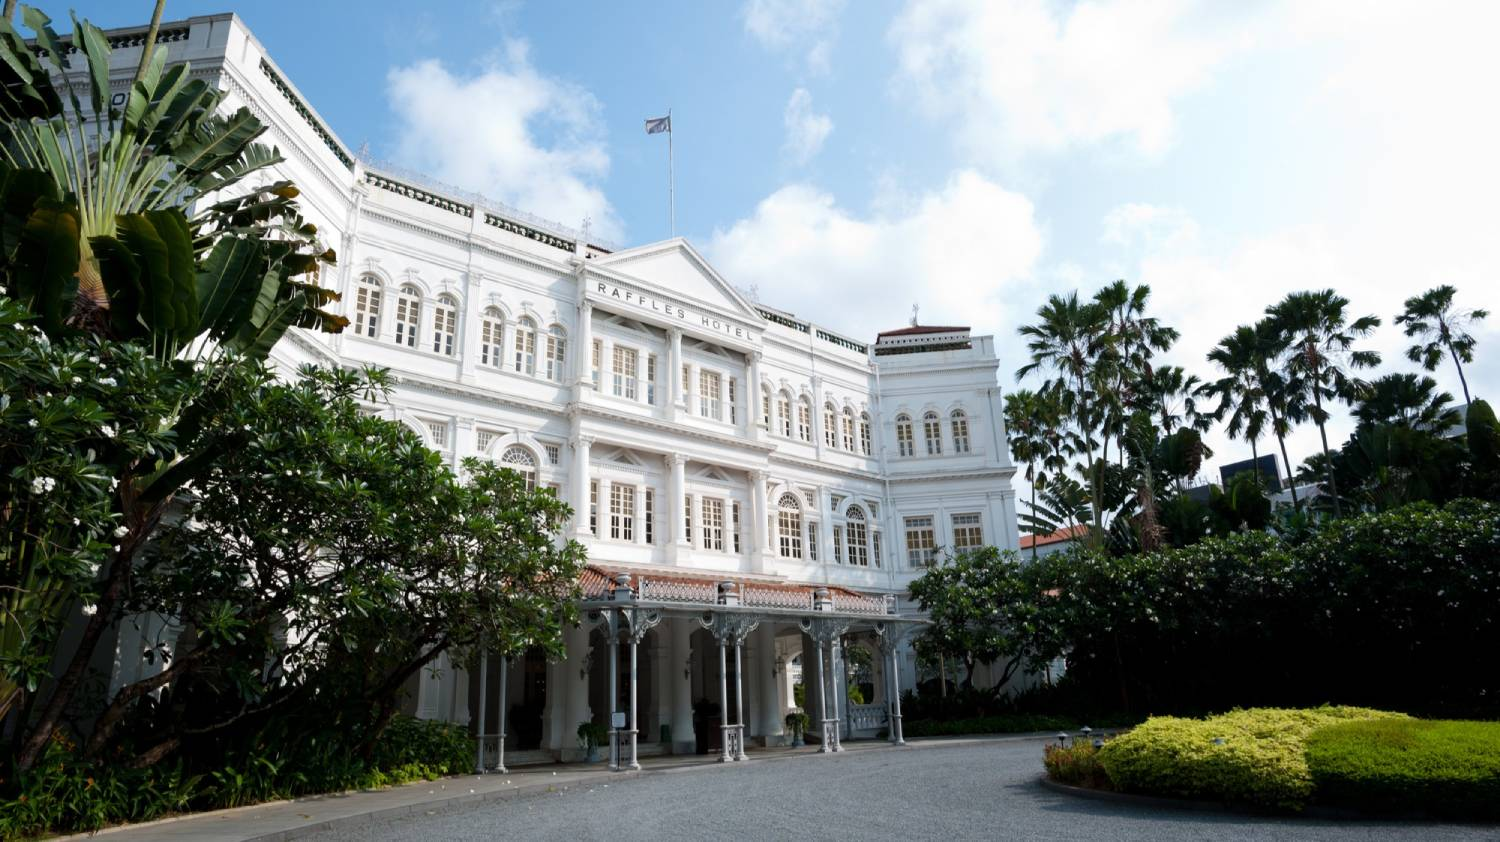 Raffles Hotel - Things To Do In Singapore